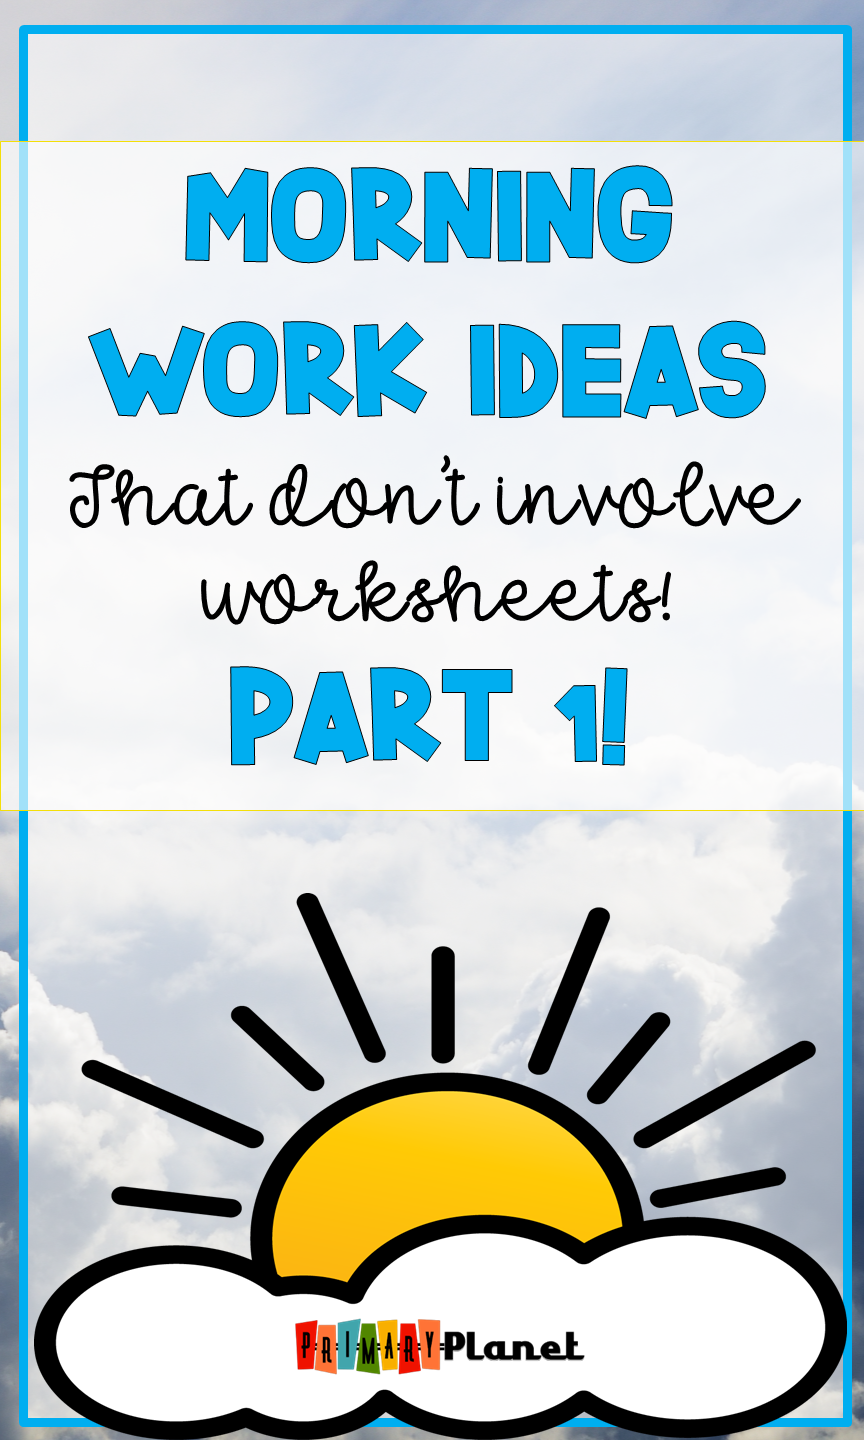 8 Morning Works Ideas (Part 1)  for 1st, 2nd, or 3rd grade that don't involve worksheets! These fun morning work routines will help you set the tone for your day! You will also find ideas for morning work tubs, free activities, and even some paperless bell ringer choices!  Most ideas are little to no prep! Morning Work ideas for Reading, Writing, Math, Book Shopping, and Computers!  Don't forget to save and grab your freebies!  #morningwork #teachers #primaryplanet